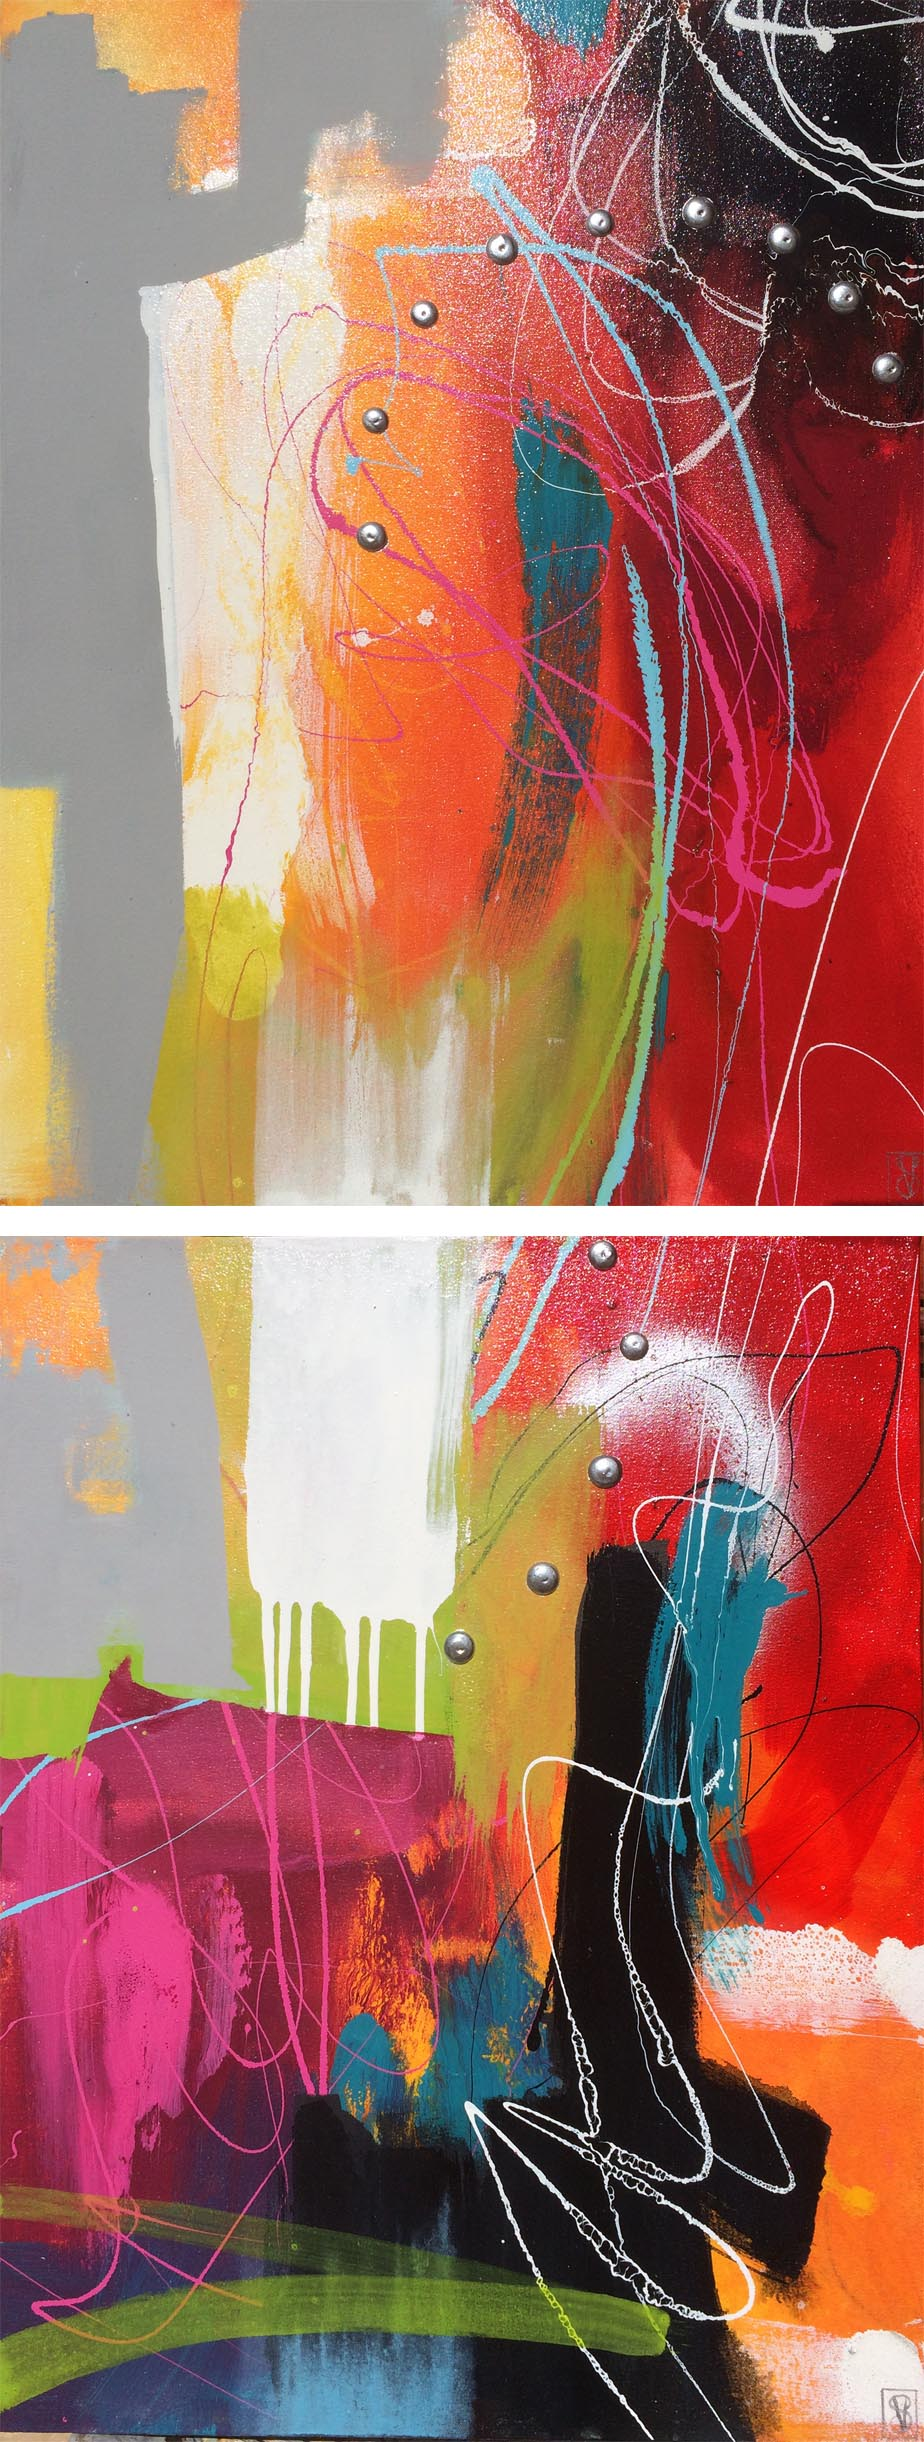 Vicky Sanders Abstract - All That Jazz